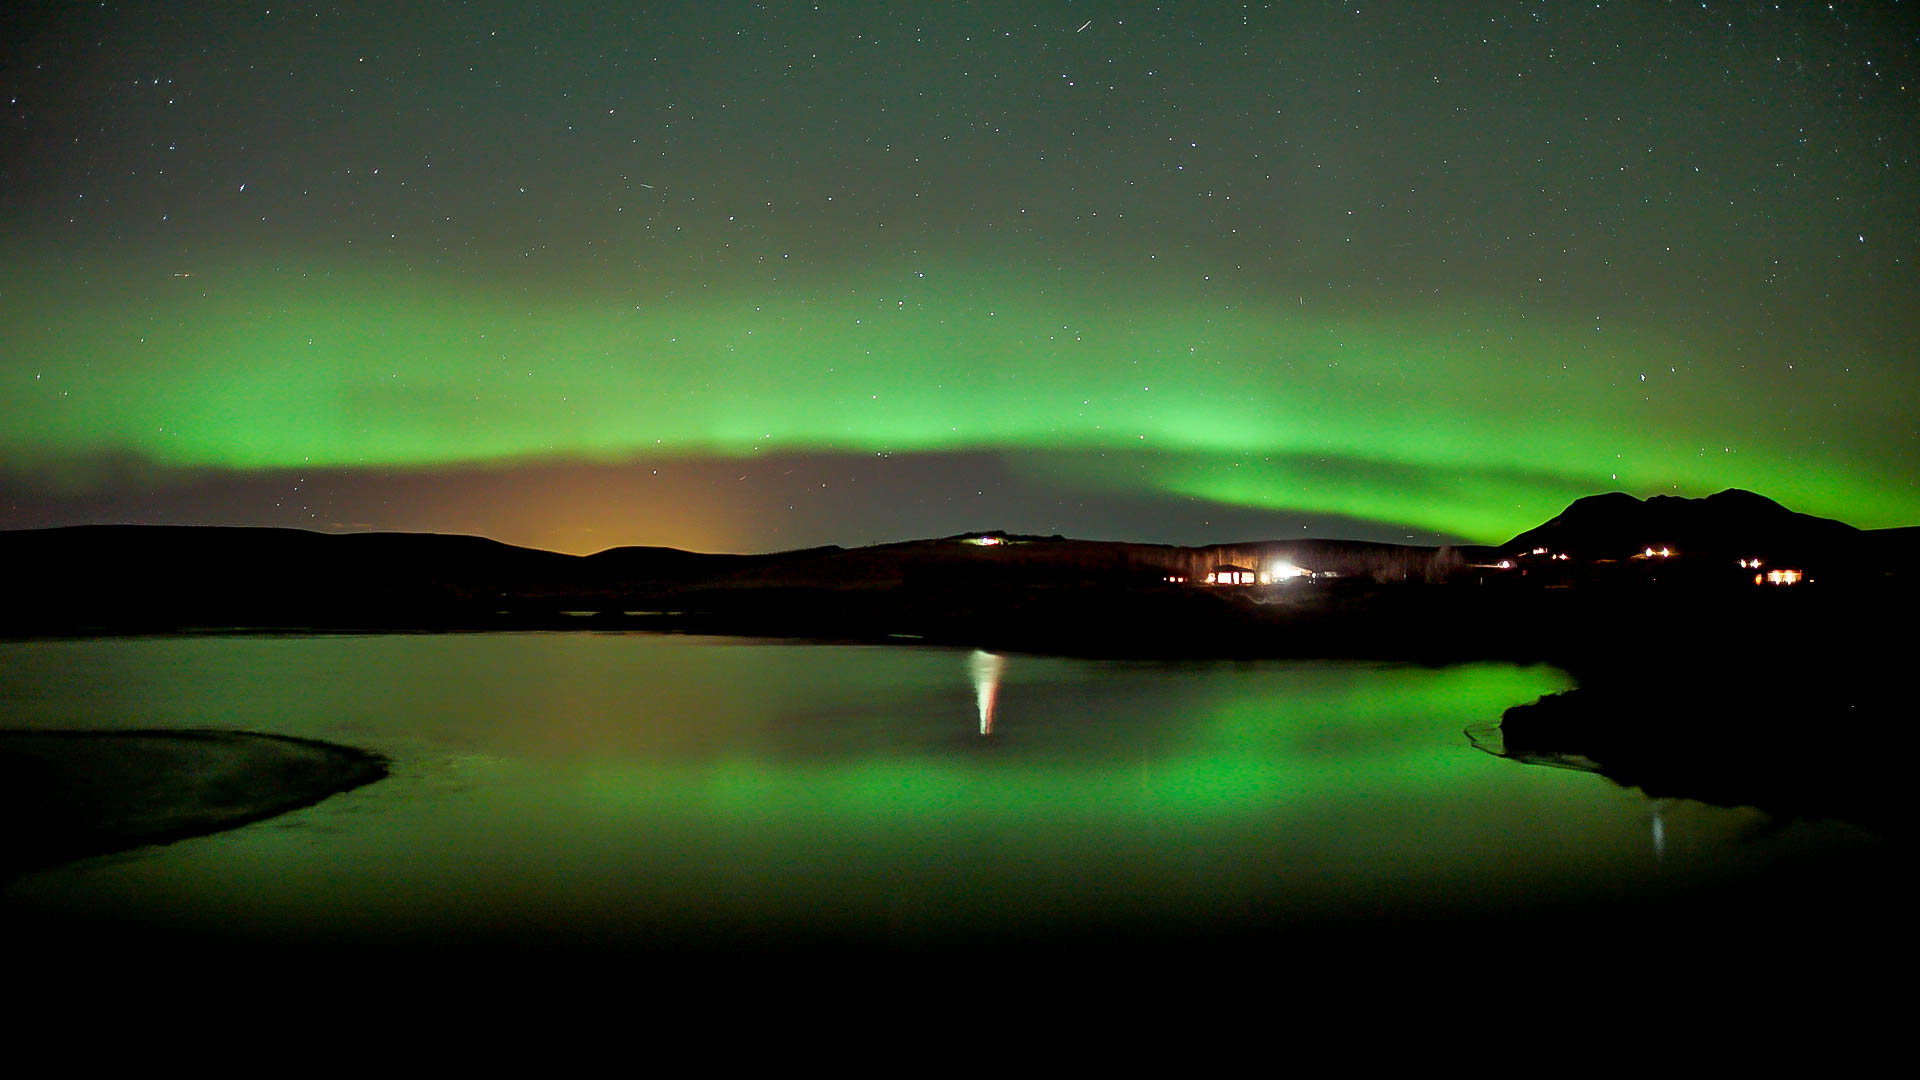 WORLDS FIRST REAL-TIME NORTHERN LIGHTS ALERT APP LAUNCHES